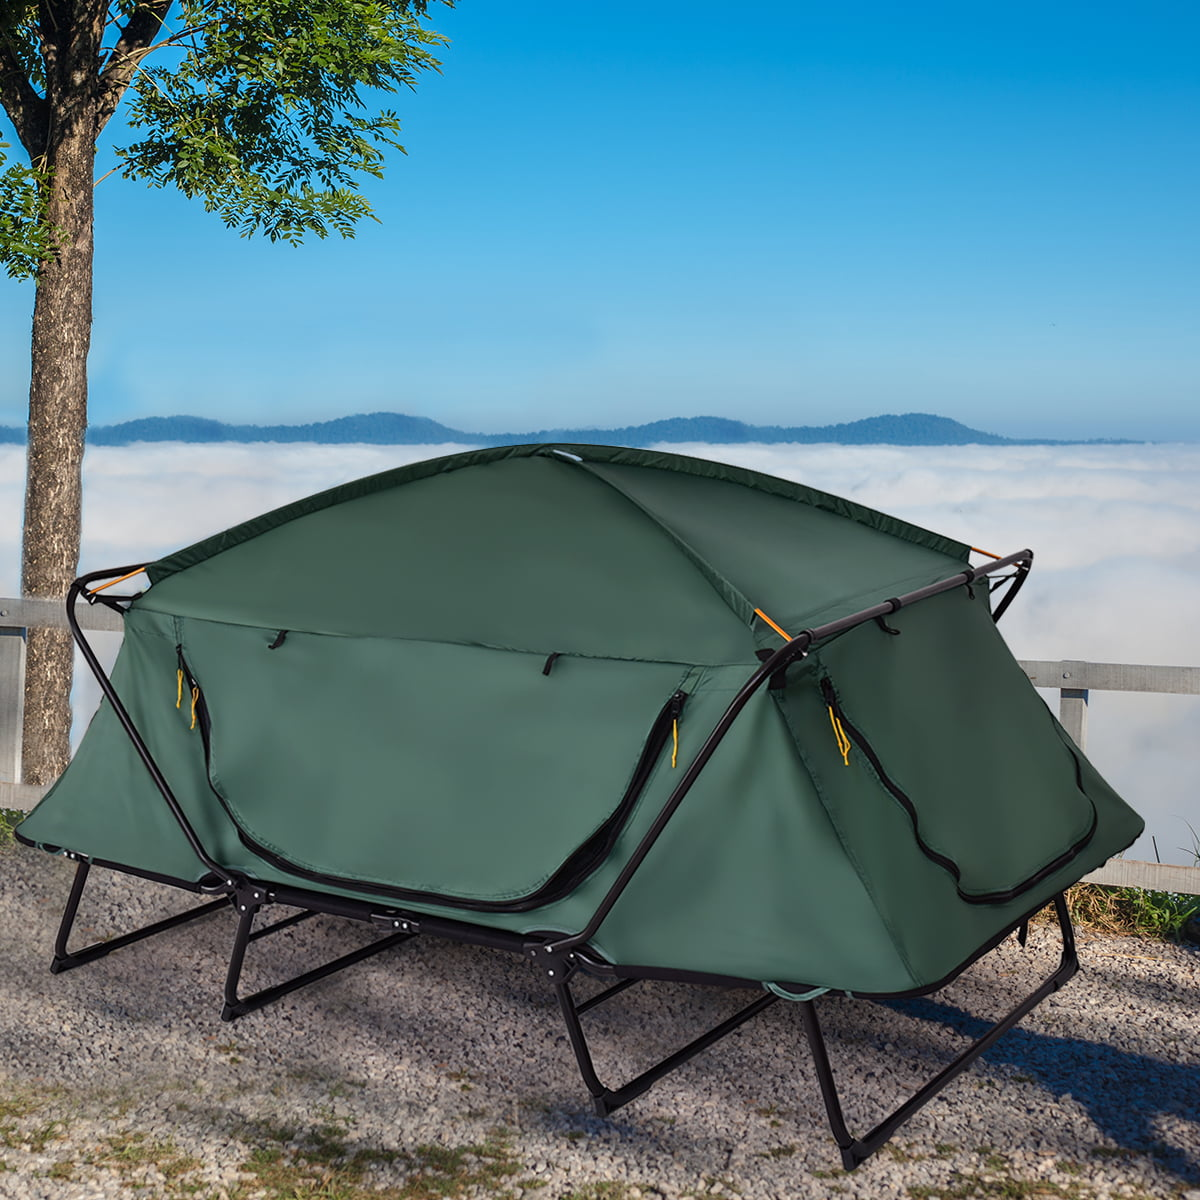 Click here to buy Gymax 2 Person Folding Hiking Outdoor Elevated Camping Tent Cot Waterproof w  Carry Bag by Gymax.